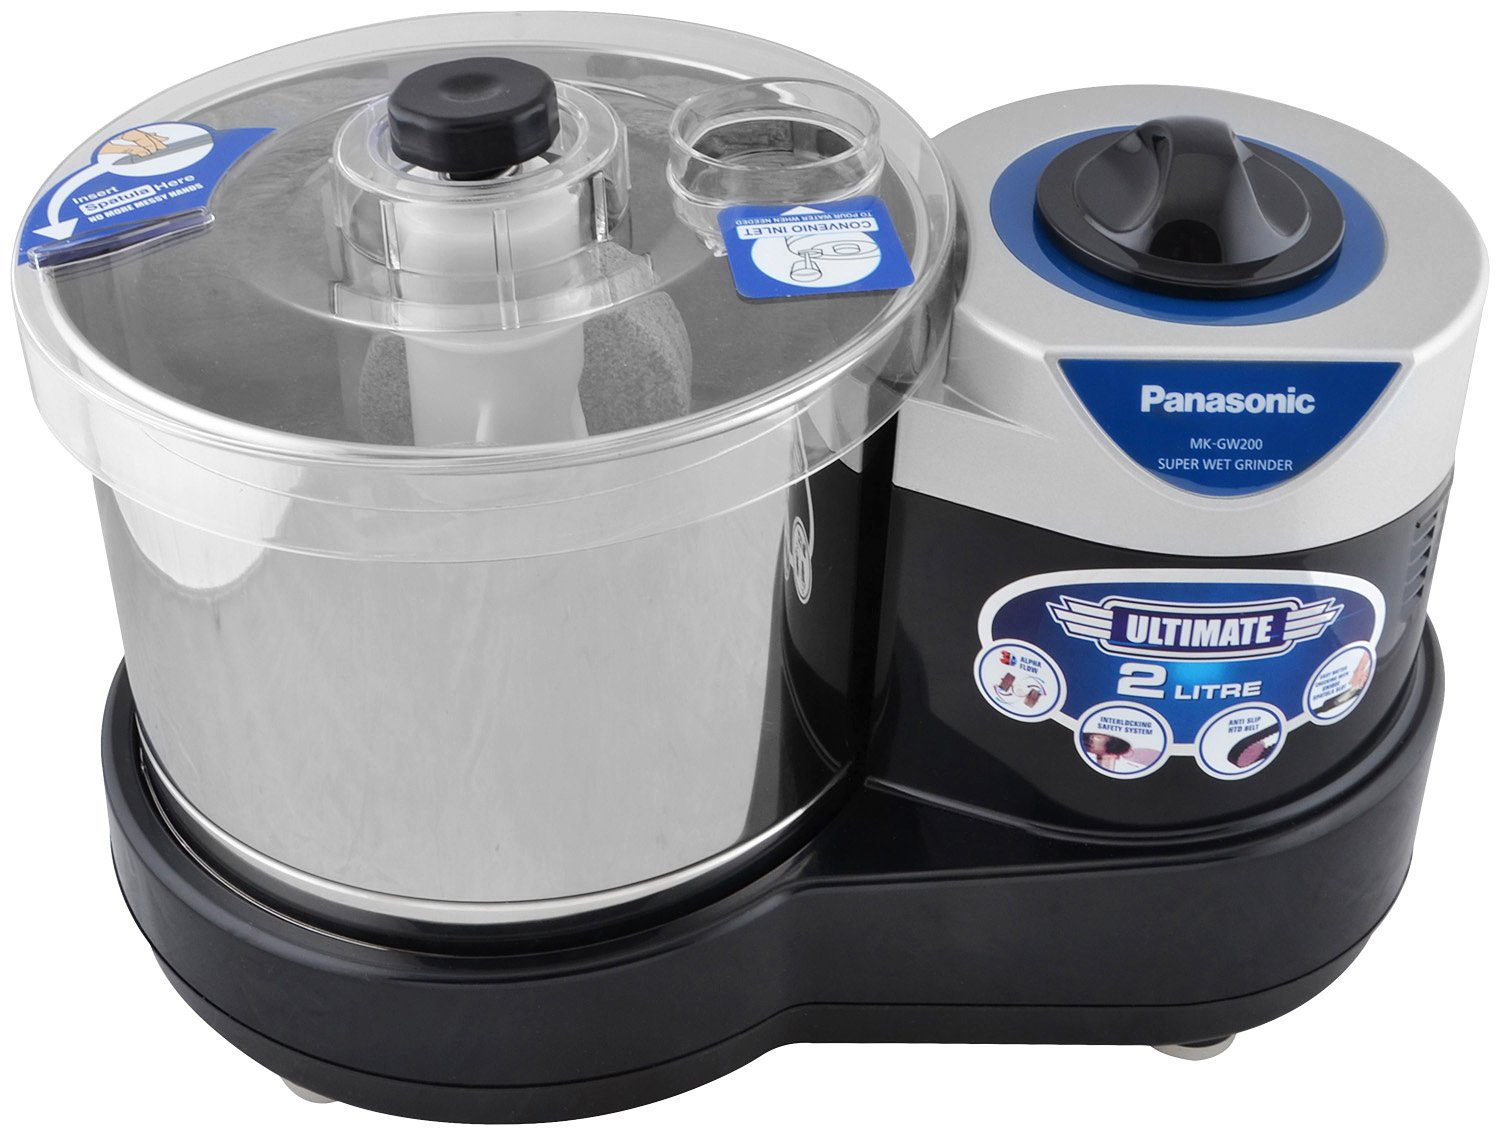 Panasonic MK-GW200 Super Wet Grinder, Black